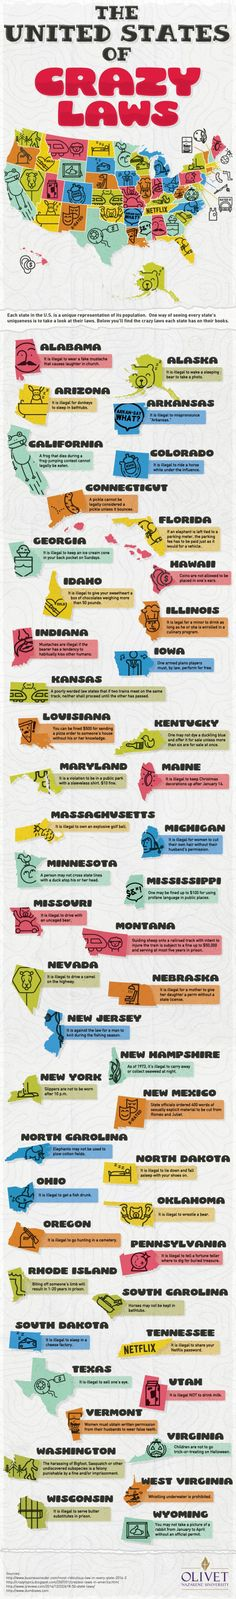 Save this infographic to see some of the craziest laws that every state in the US has.